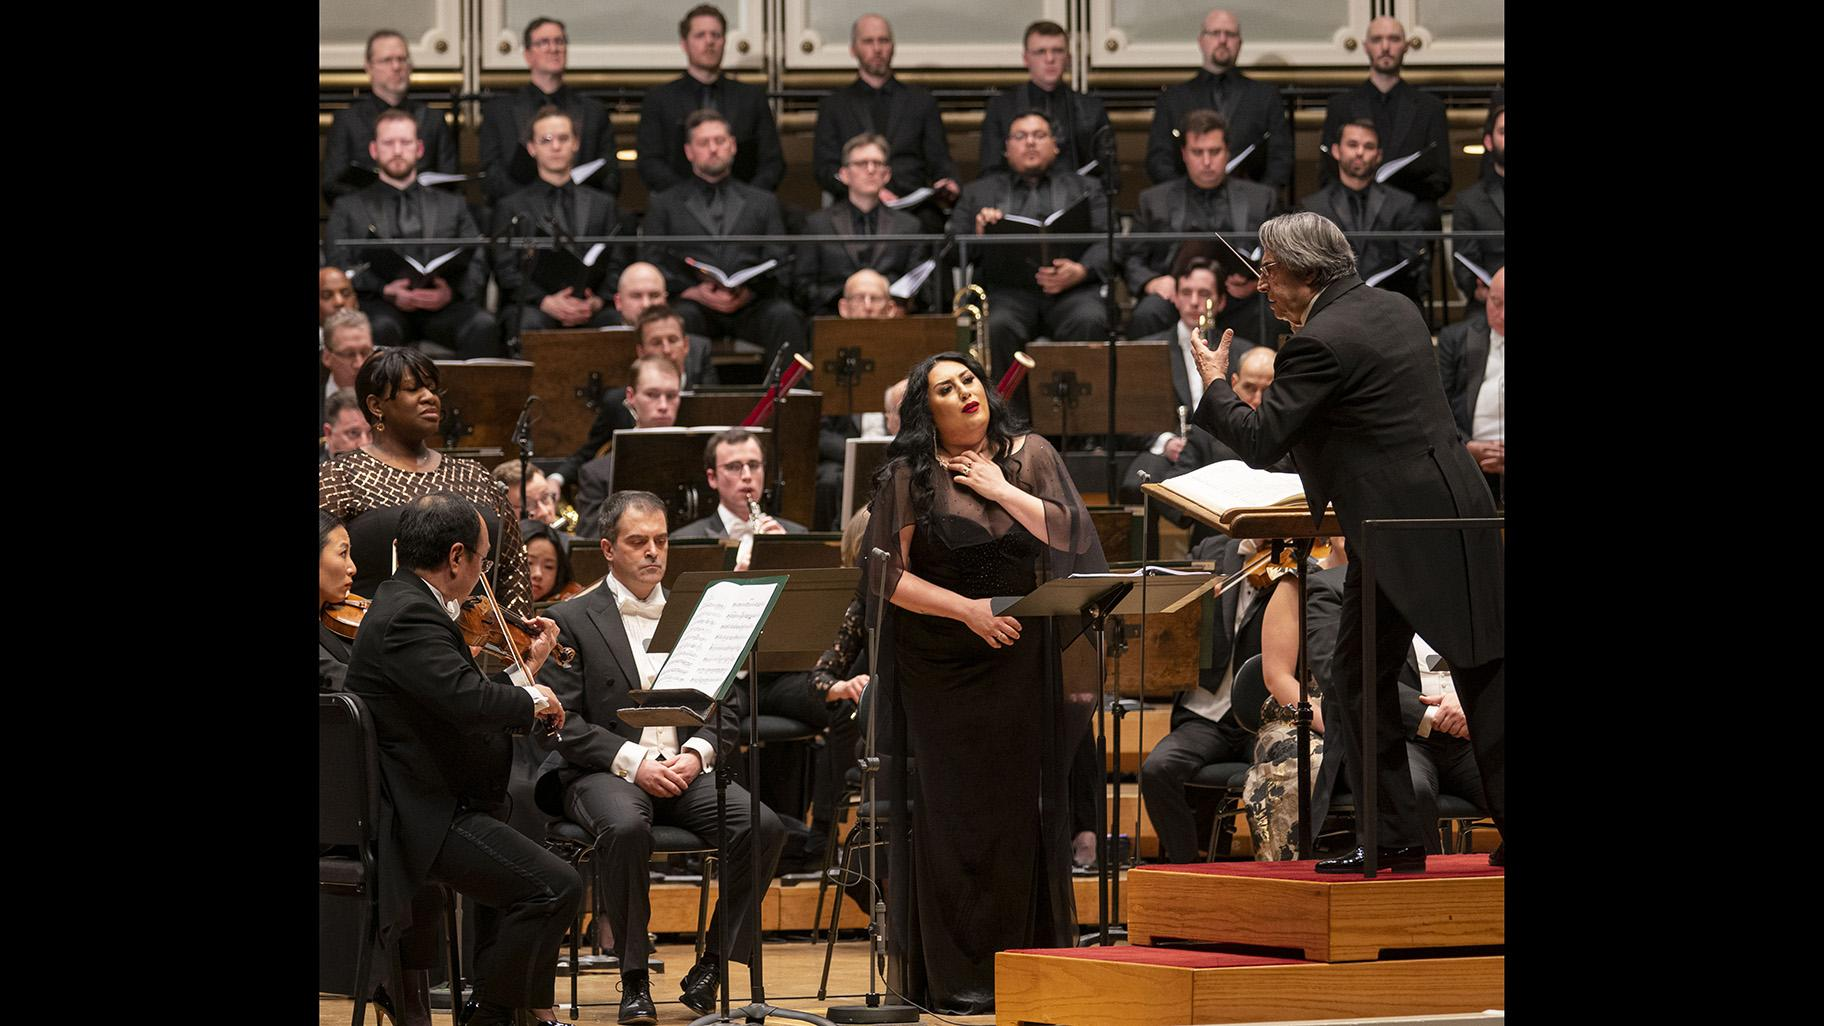 "Mezzo-soprano Anita Rachvelishvili, center, performs the role of Santuzza in ""Cavalleria rusticana,"" conducted by music director Riccardo Muti, right, with the Chicago Symphony Orchestra and Chorus at Symphony Center on Feb. 6, 2020. (Credit: Todd Rosenberg)"